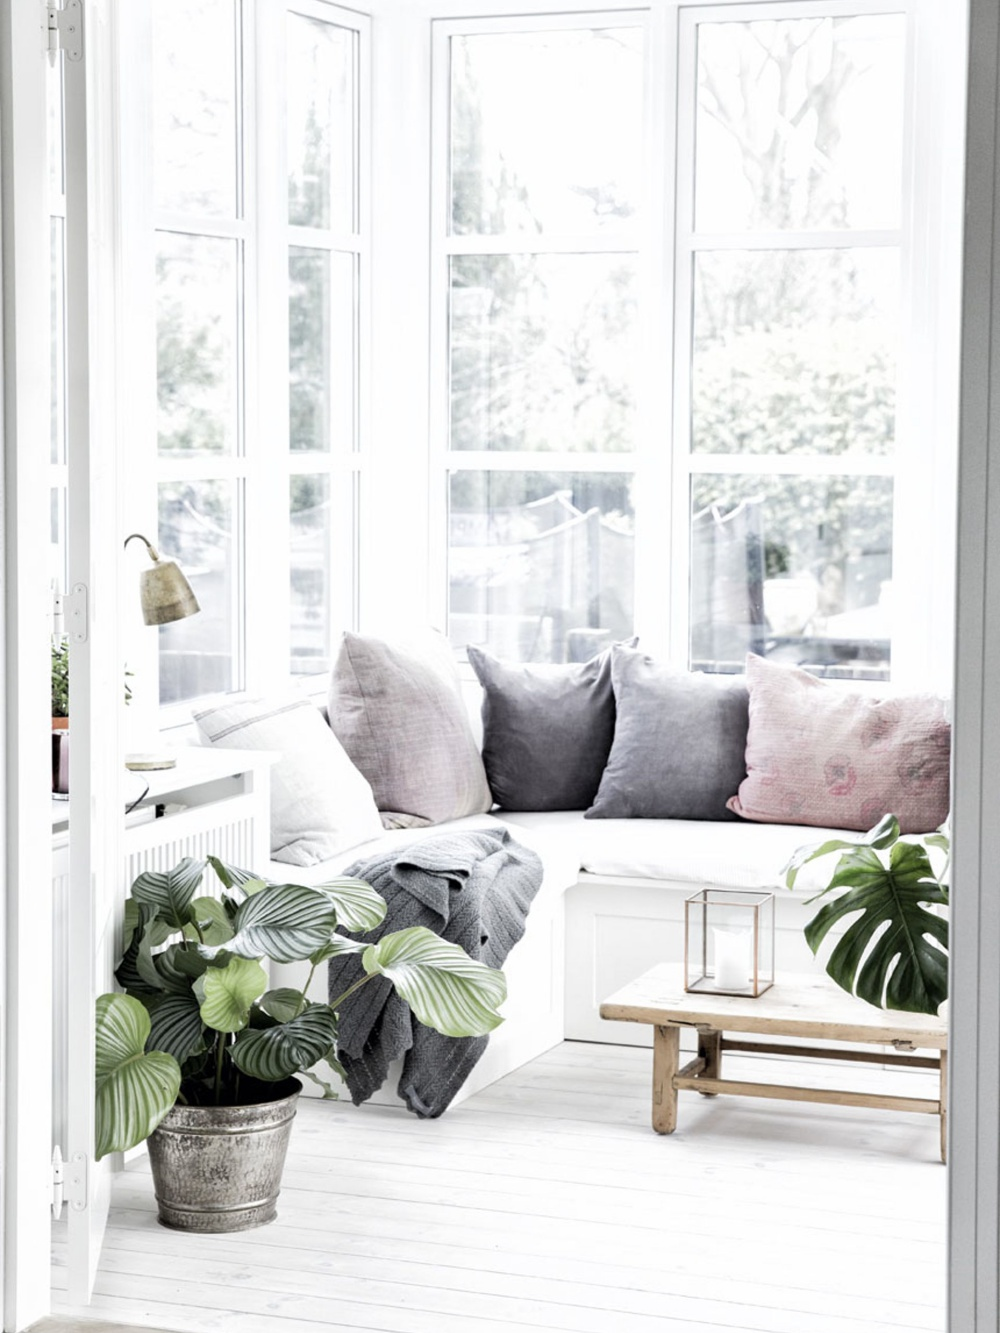 Cozy Home with Muted Colors